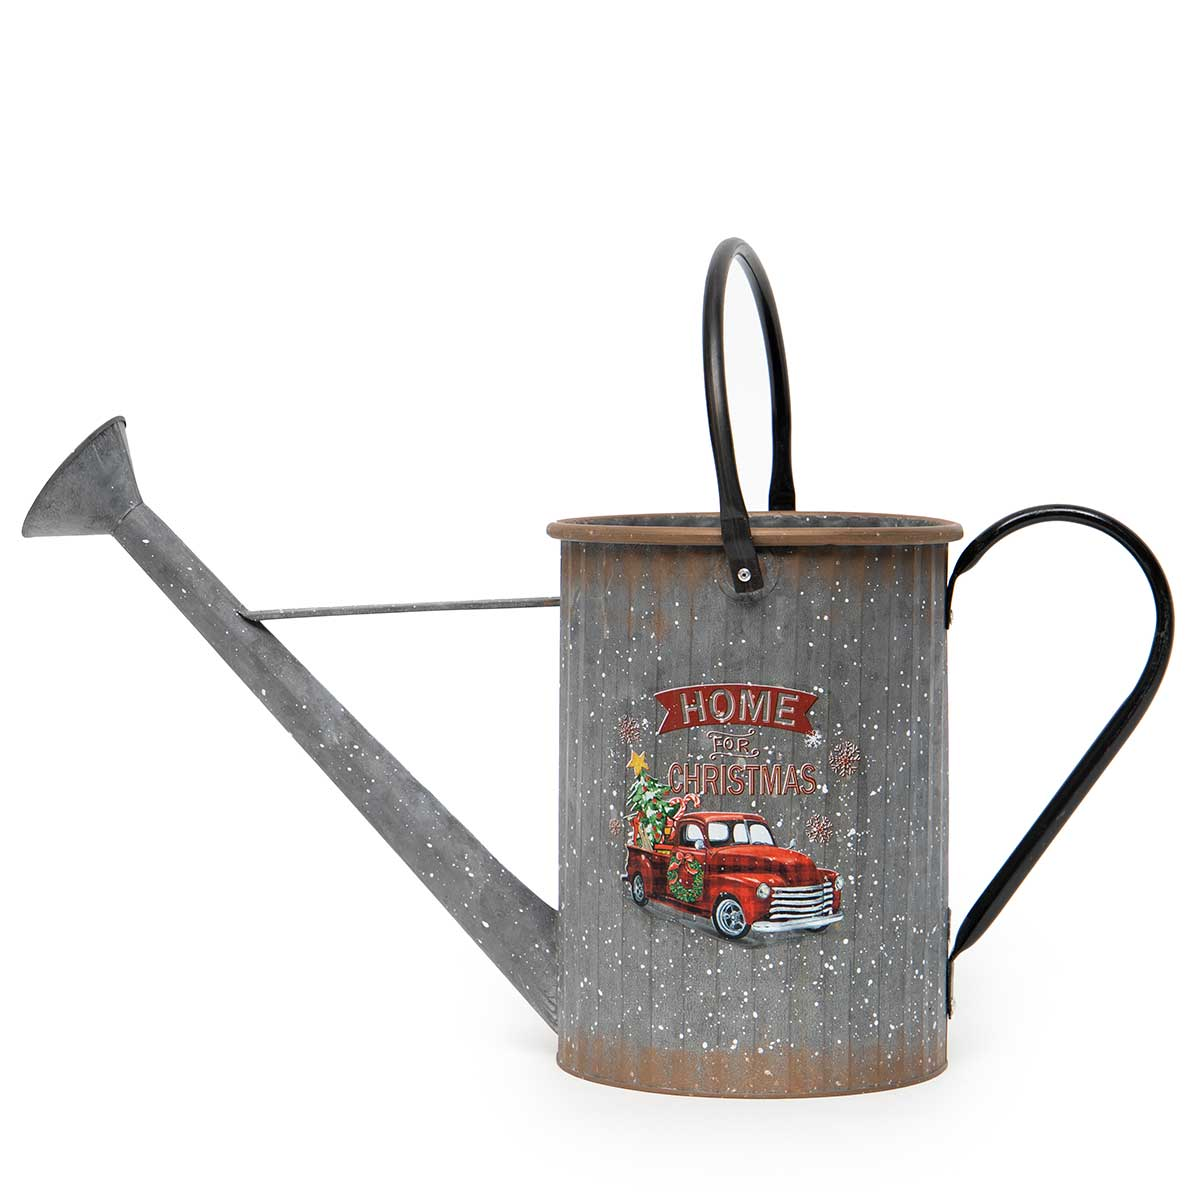 METAL TRUCK WATERING CAN